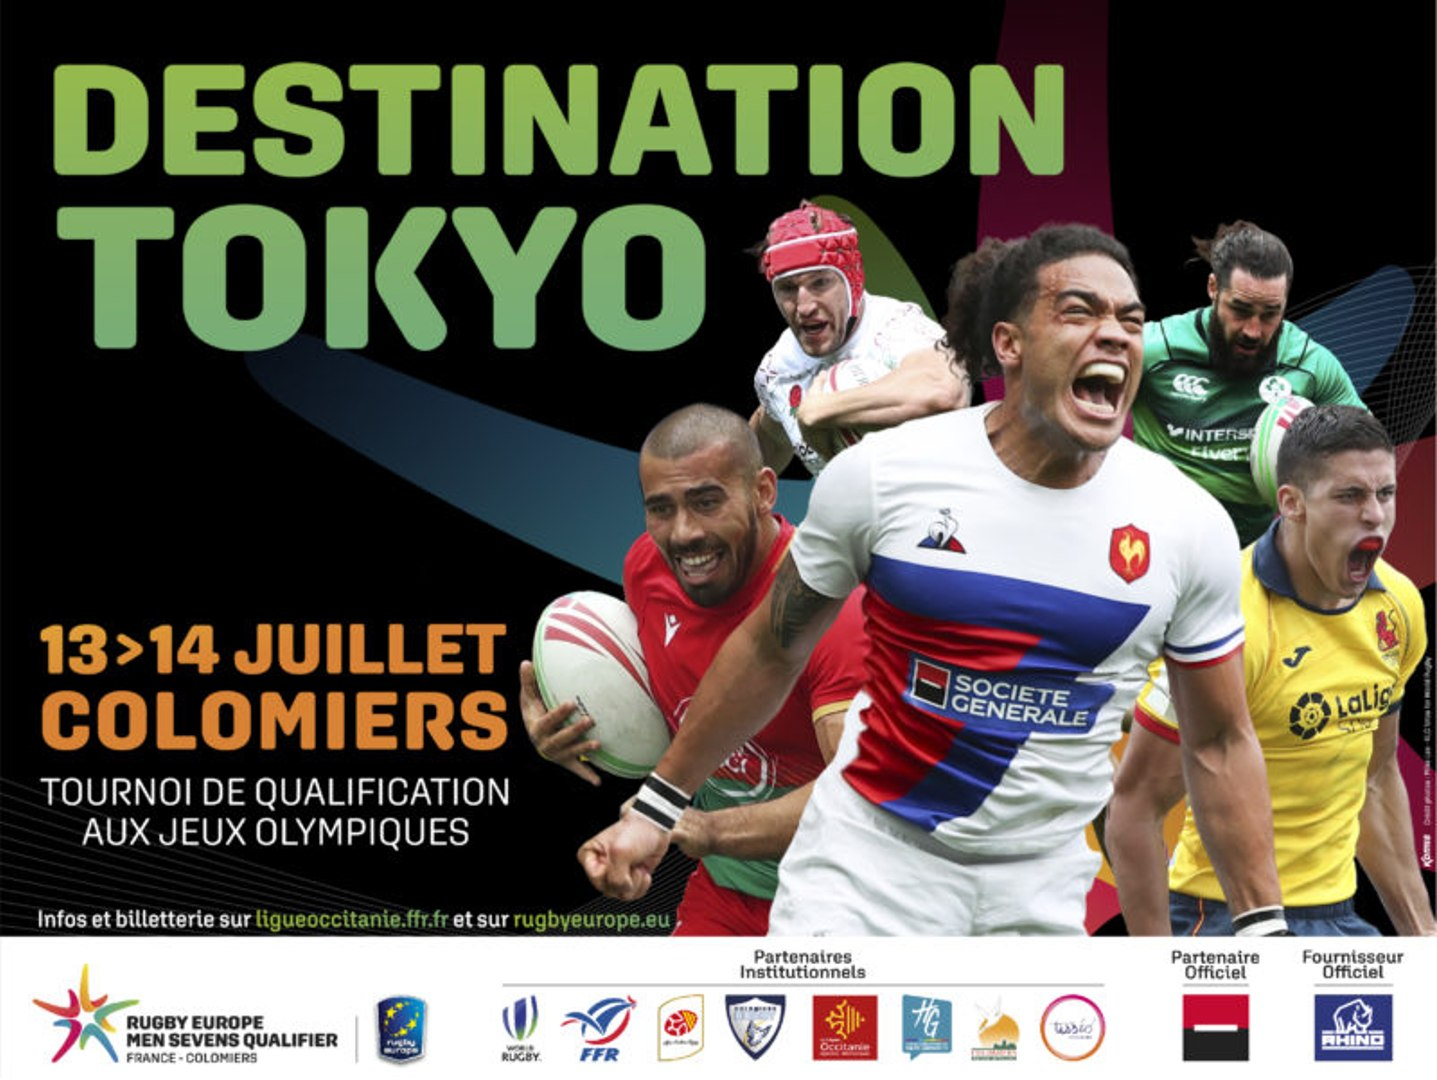 RUGBY EUROPE MENS SEVENS OLYMPIC QUALIFIER - COLOMIERS 2019